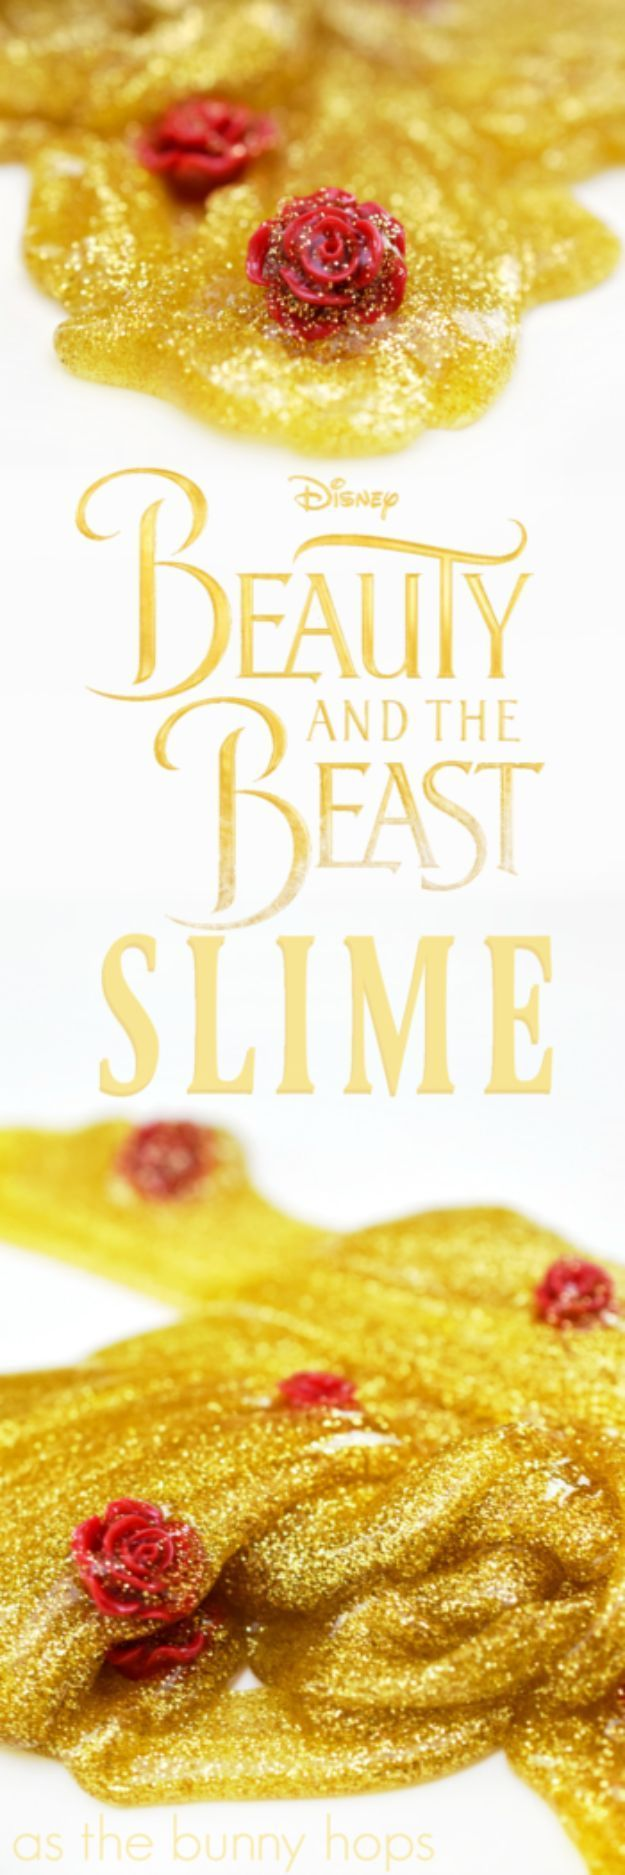 Best DIY Slime Recipes - Beauty And The Beast Slime- Cool and Easy Slime Recipe and Tutorials - Ideas Without Glue, Without Borax, For Kids, With Liquid Starch, Cornstarch and Laundry Detergent - How to Make Slime at Home - Fun Crafts and DIY Projects for Teens, Kids, Teenagers and Teens - Galaxy and Glitter Slime, Edible Slime, Rainbow Colored Slime, Shaving Cream recipes and more fun crafts and slimes http://diyprojectsforteens.com/diy-slime-recipe-ideas